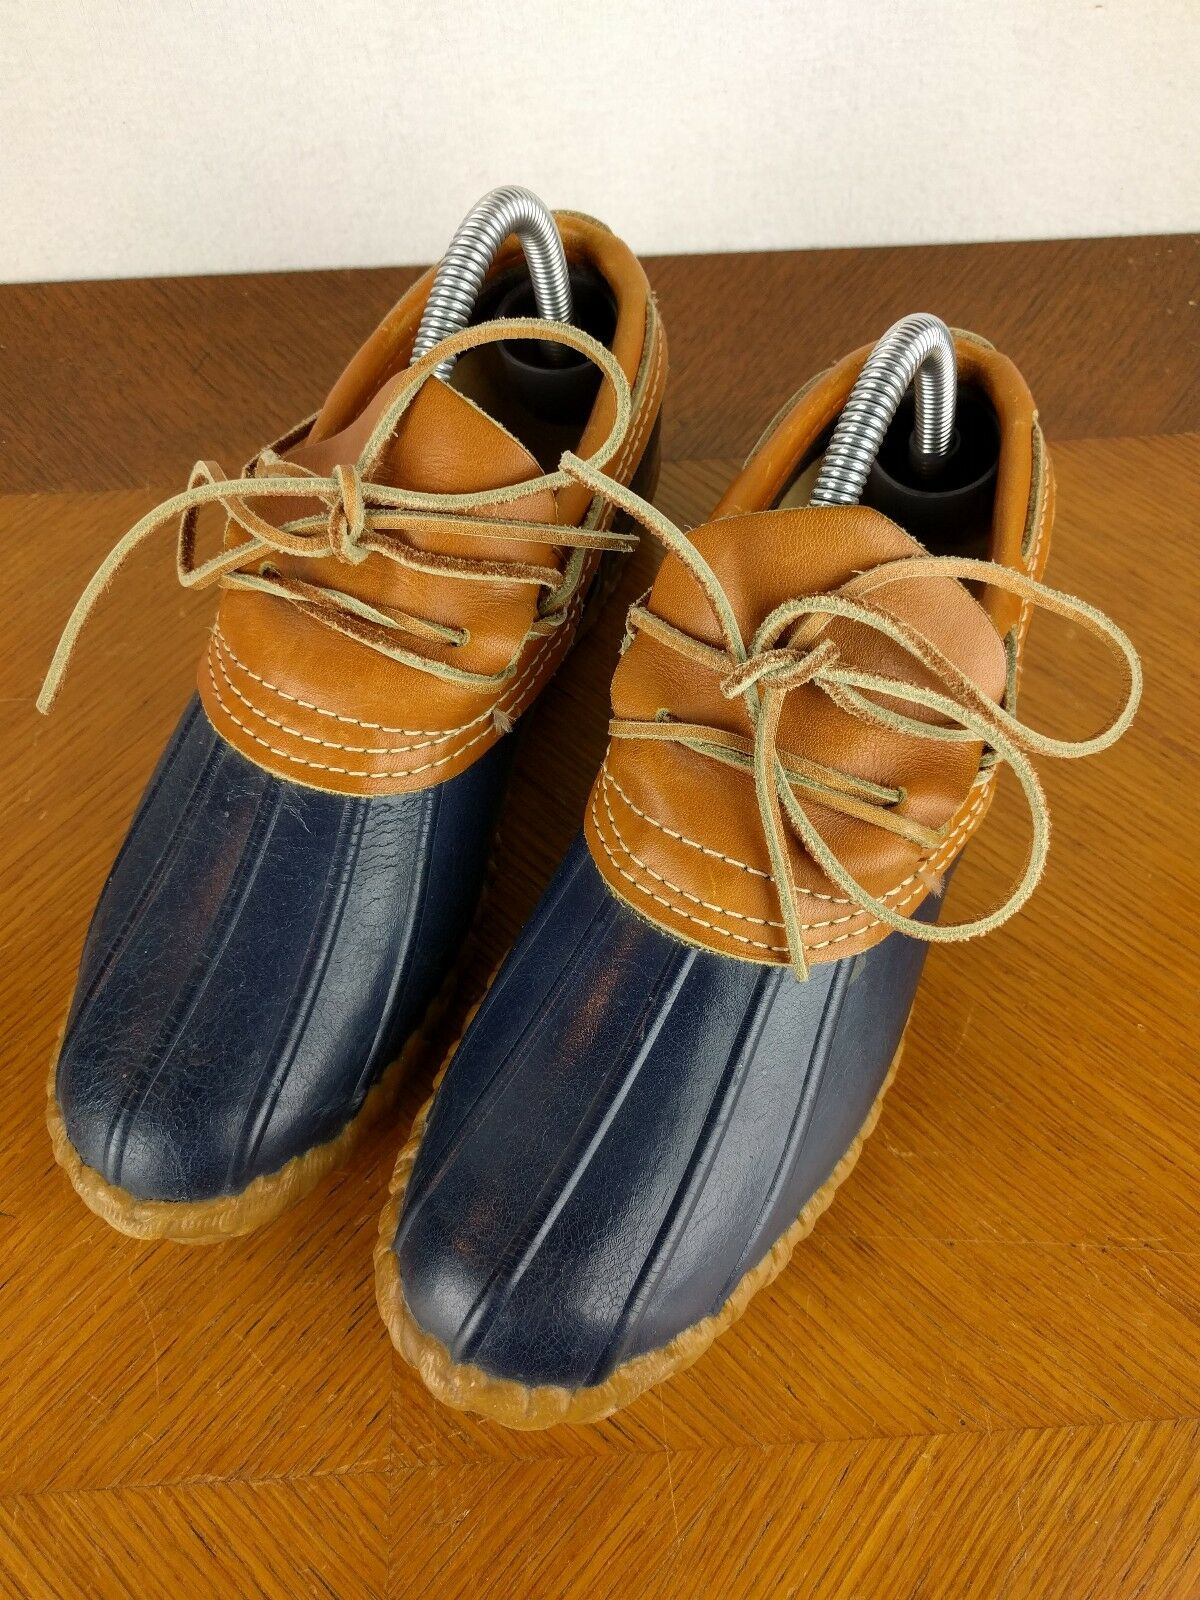 VTG LL Bean Maine Hunting Boots bluee Sz 8 USA Duck Rubber Leather Ankle shoes